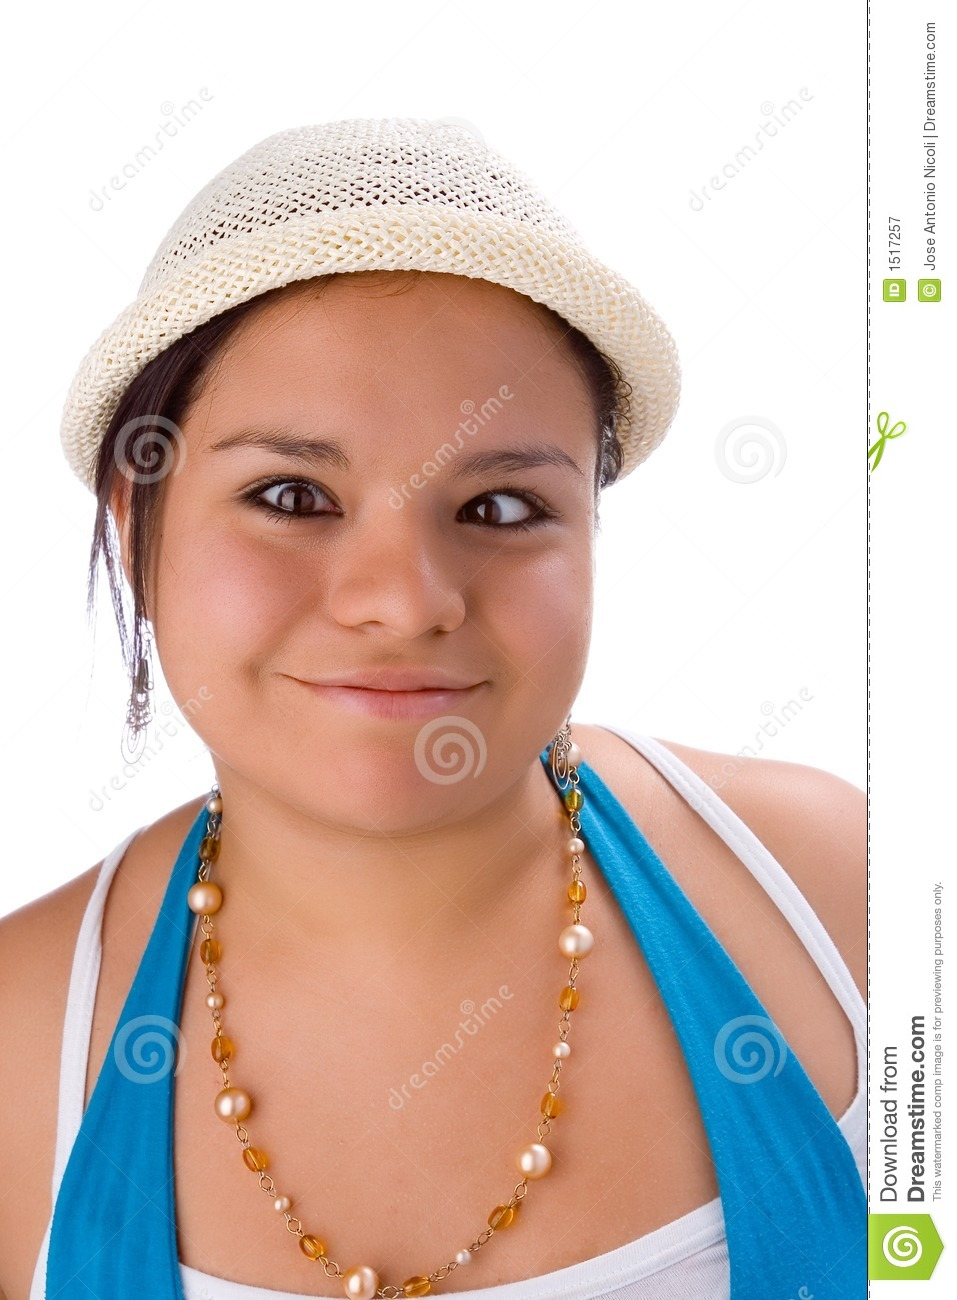 Girl With A Goofy And Cross-eyed Expression. Royalty Free Stock ...